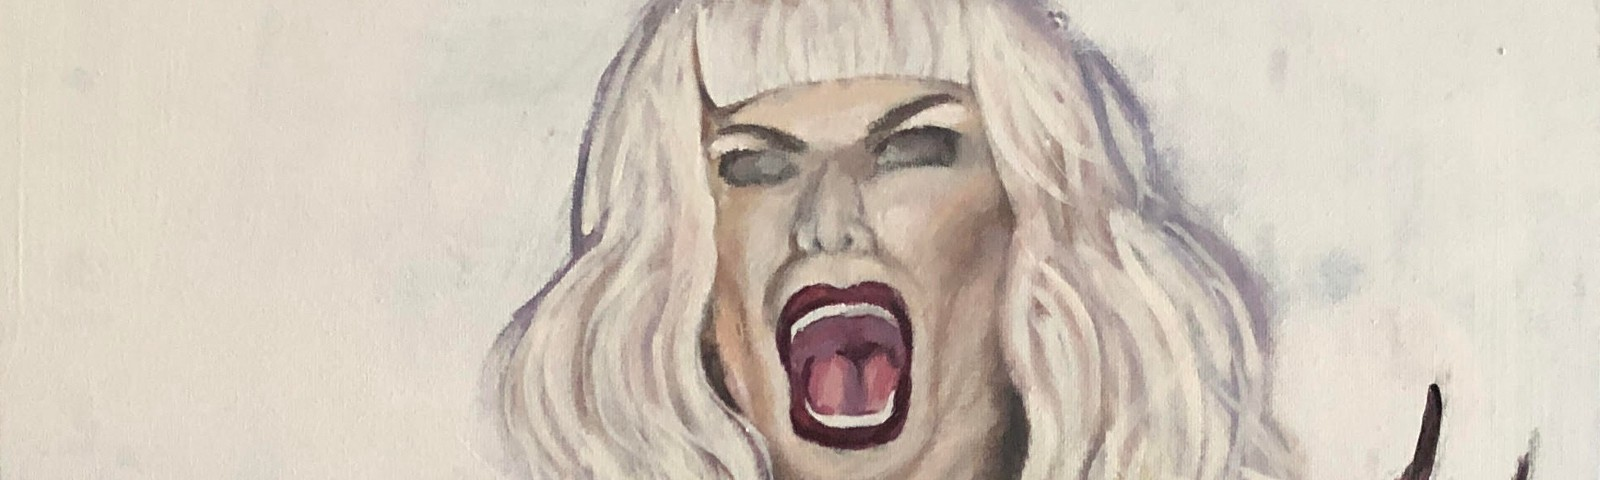 Illustration of a screaming platinum blonde woman, her hands are red with long claw-like nails, and eyes in middle of palms.